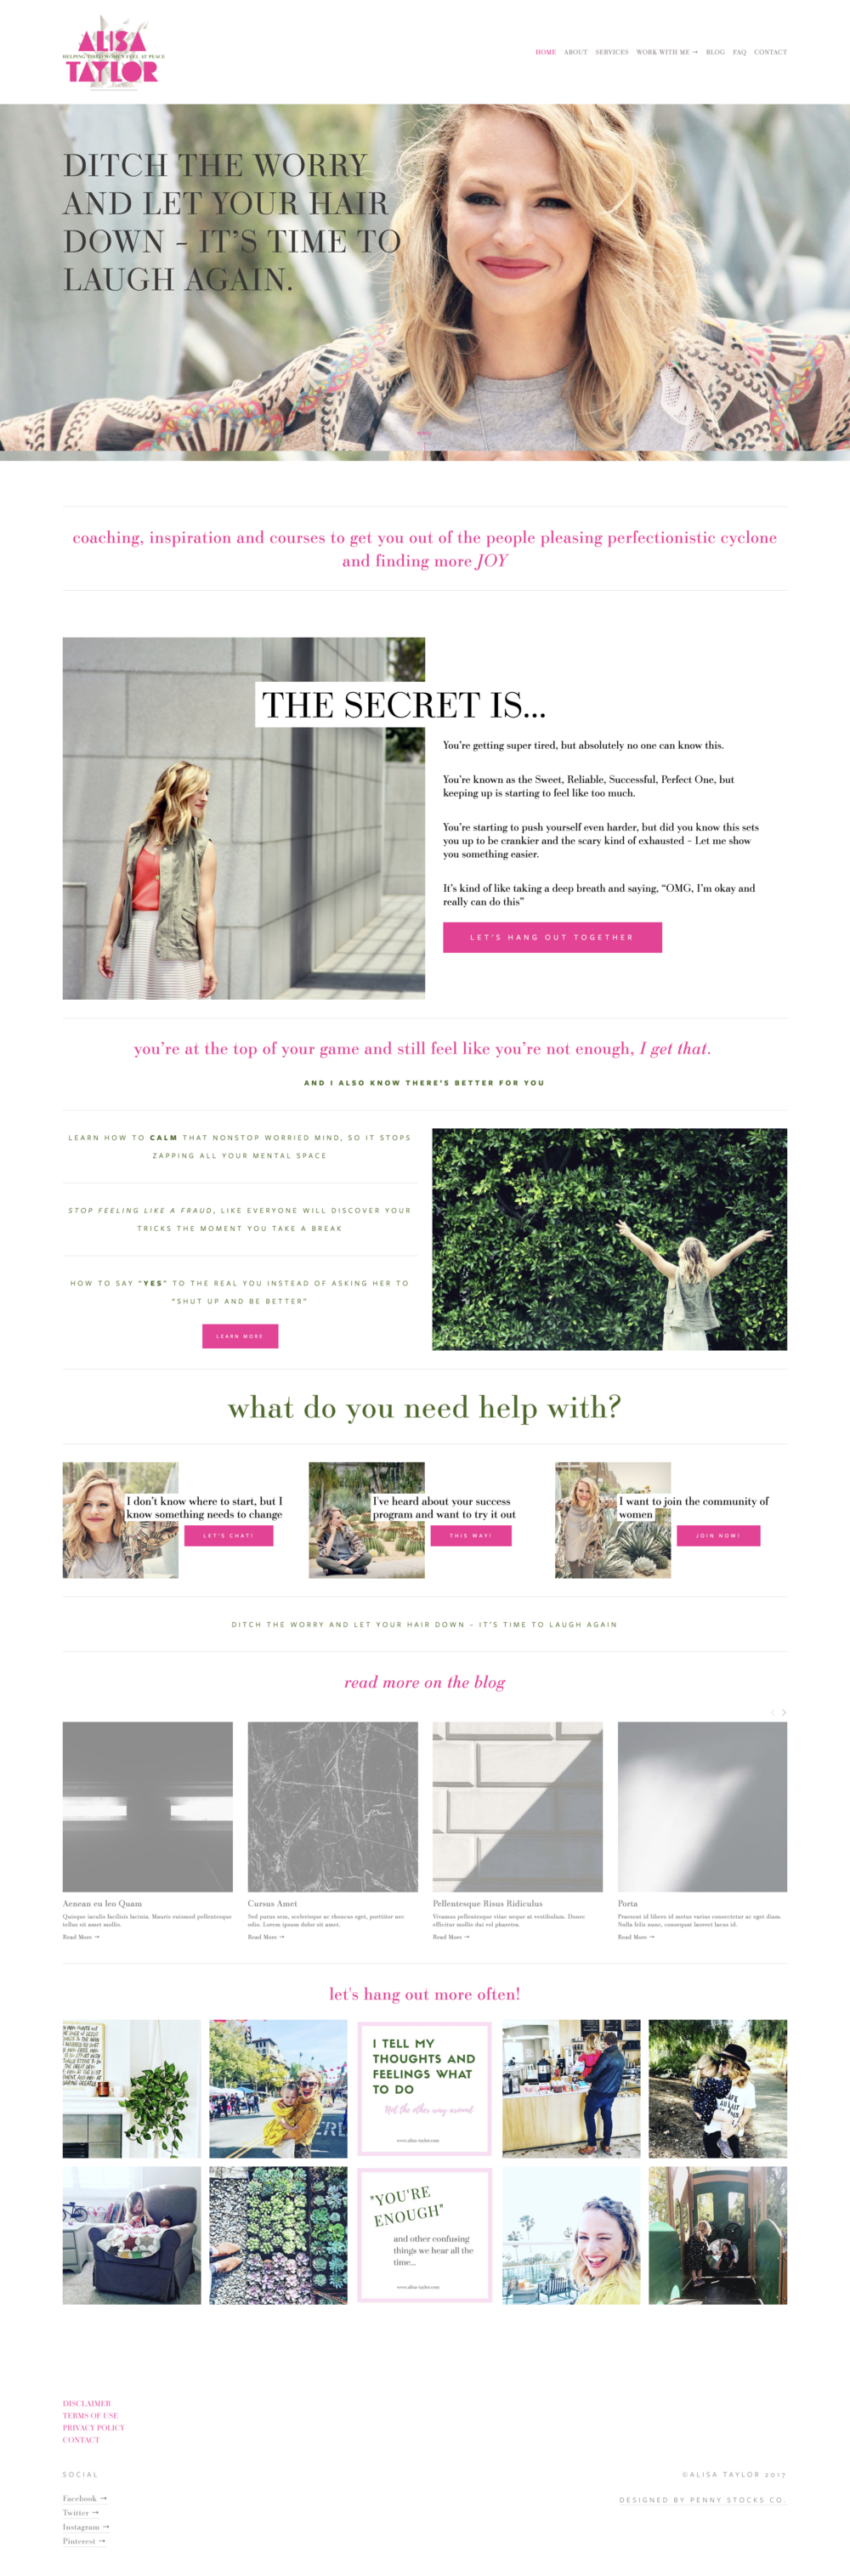 kristen-fulchi-design-studio-custom-squarespace-website-design-alisa-taylor-web-design-for-creatives-female-entrepreneurs.png